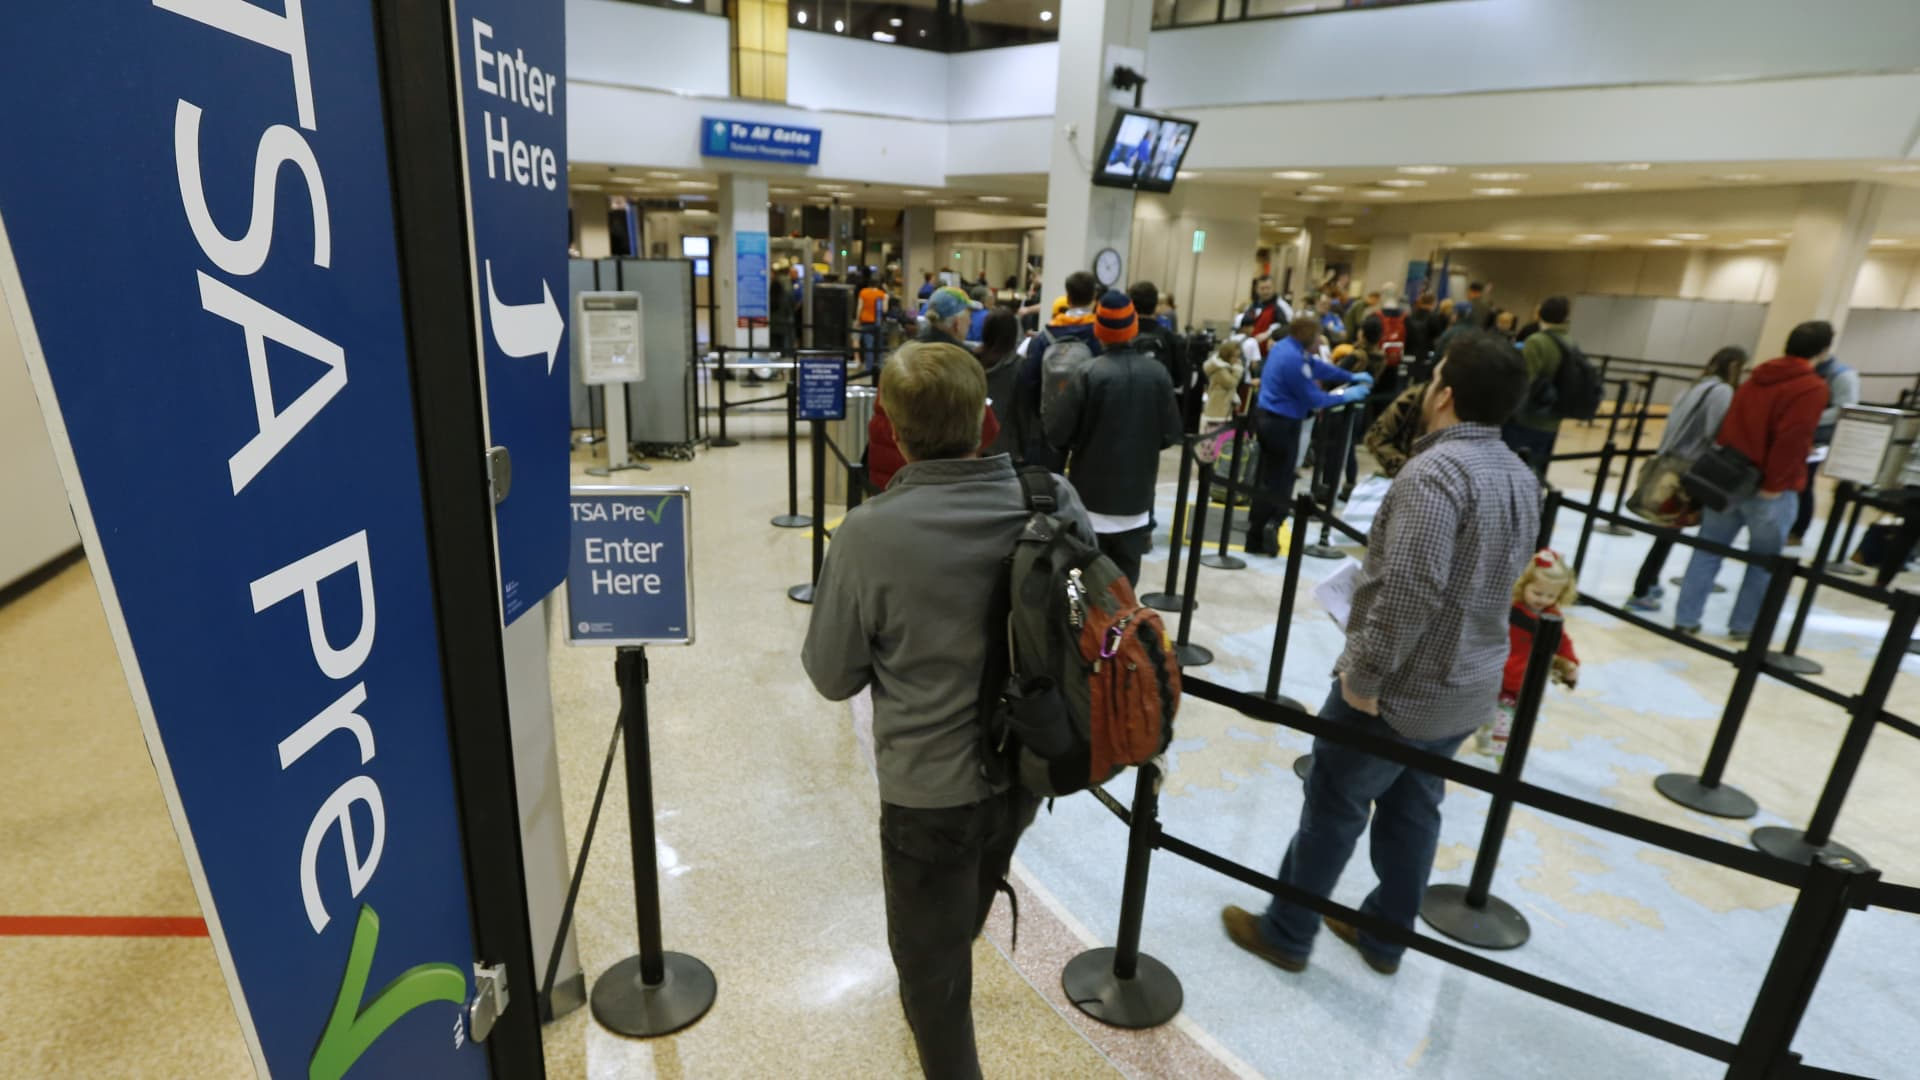 A passenger enters the Transportation Security Administration (TSA) pre-check line towards a security check point at Salt Lake City International Airport in Salt Lake City, Utah, U.S., on Tuesday, Dec. 23, 2014.